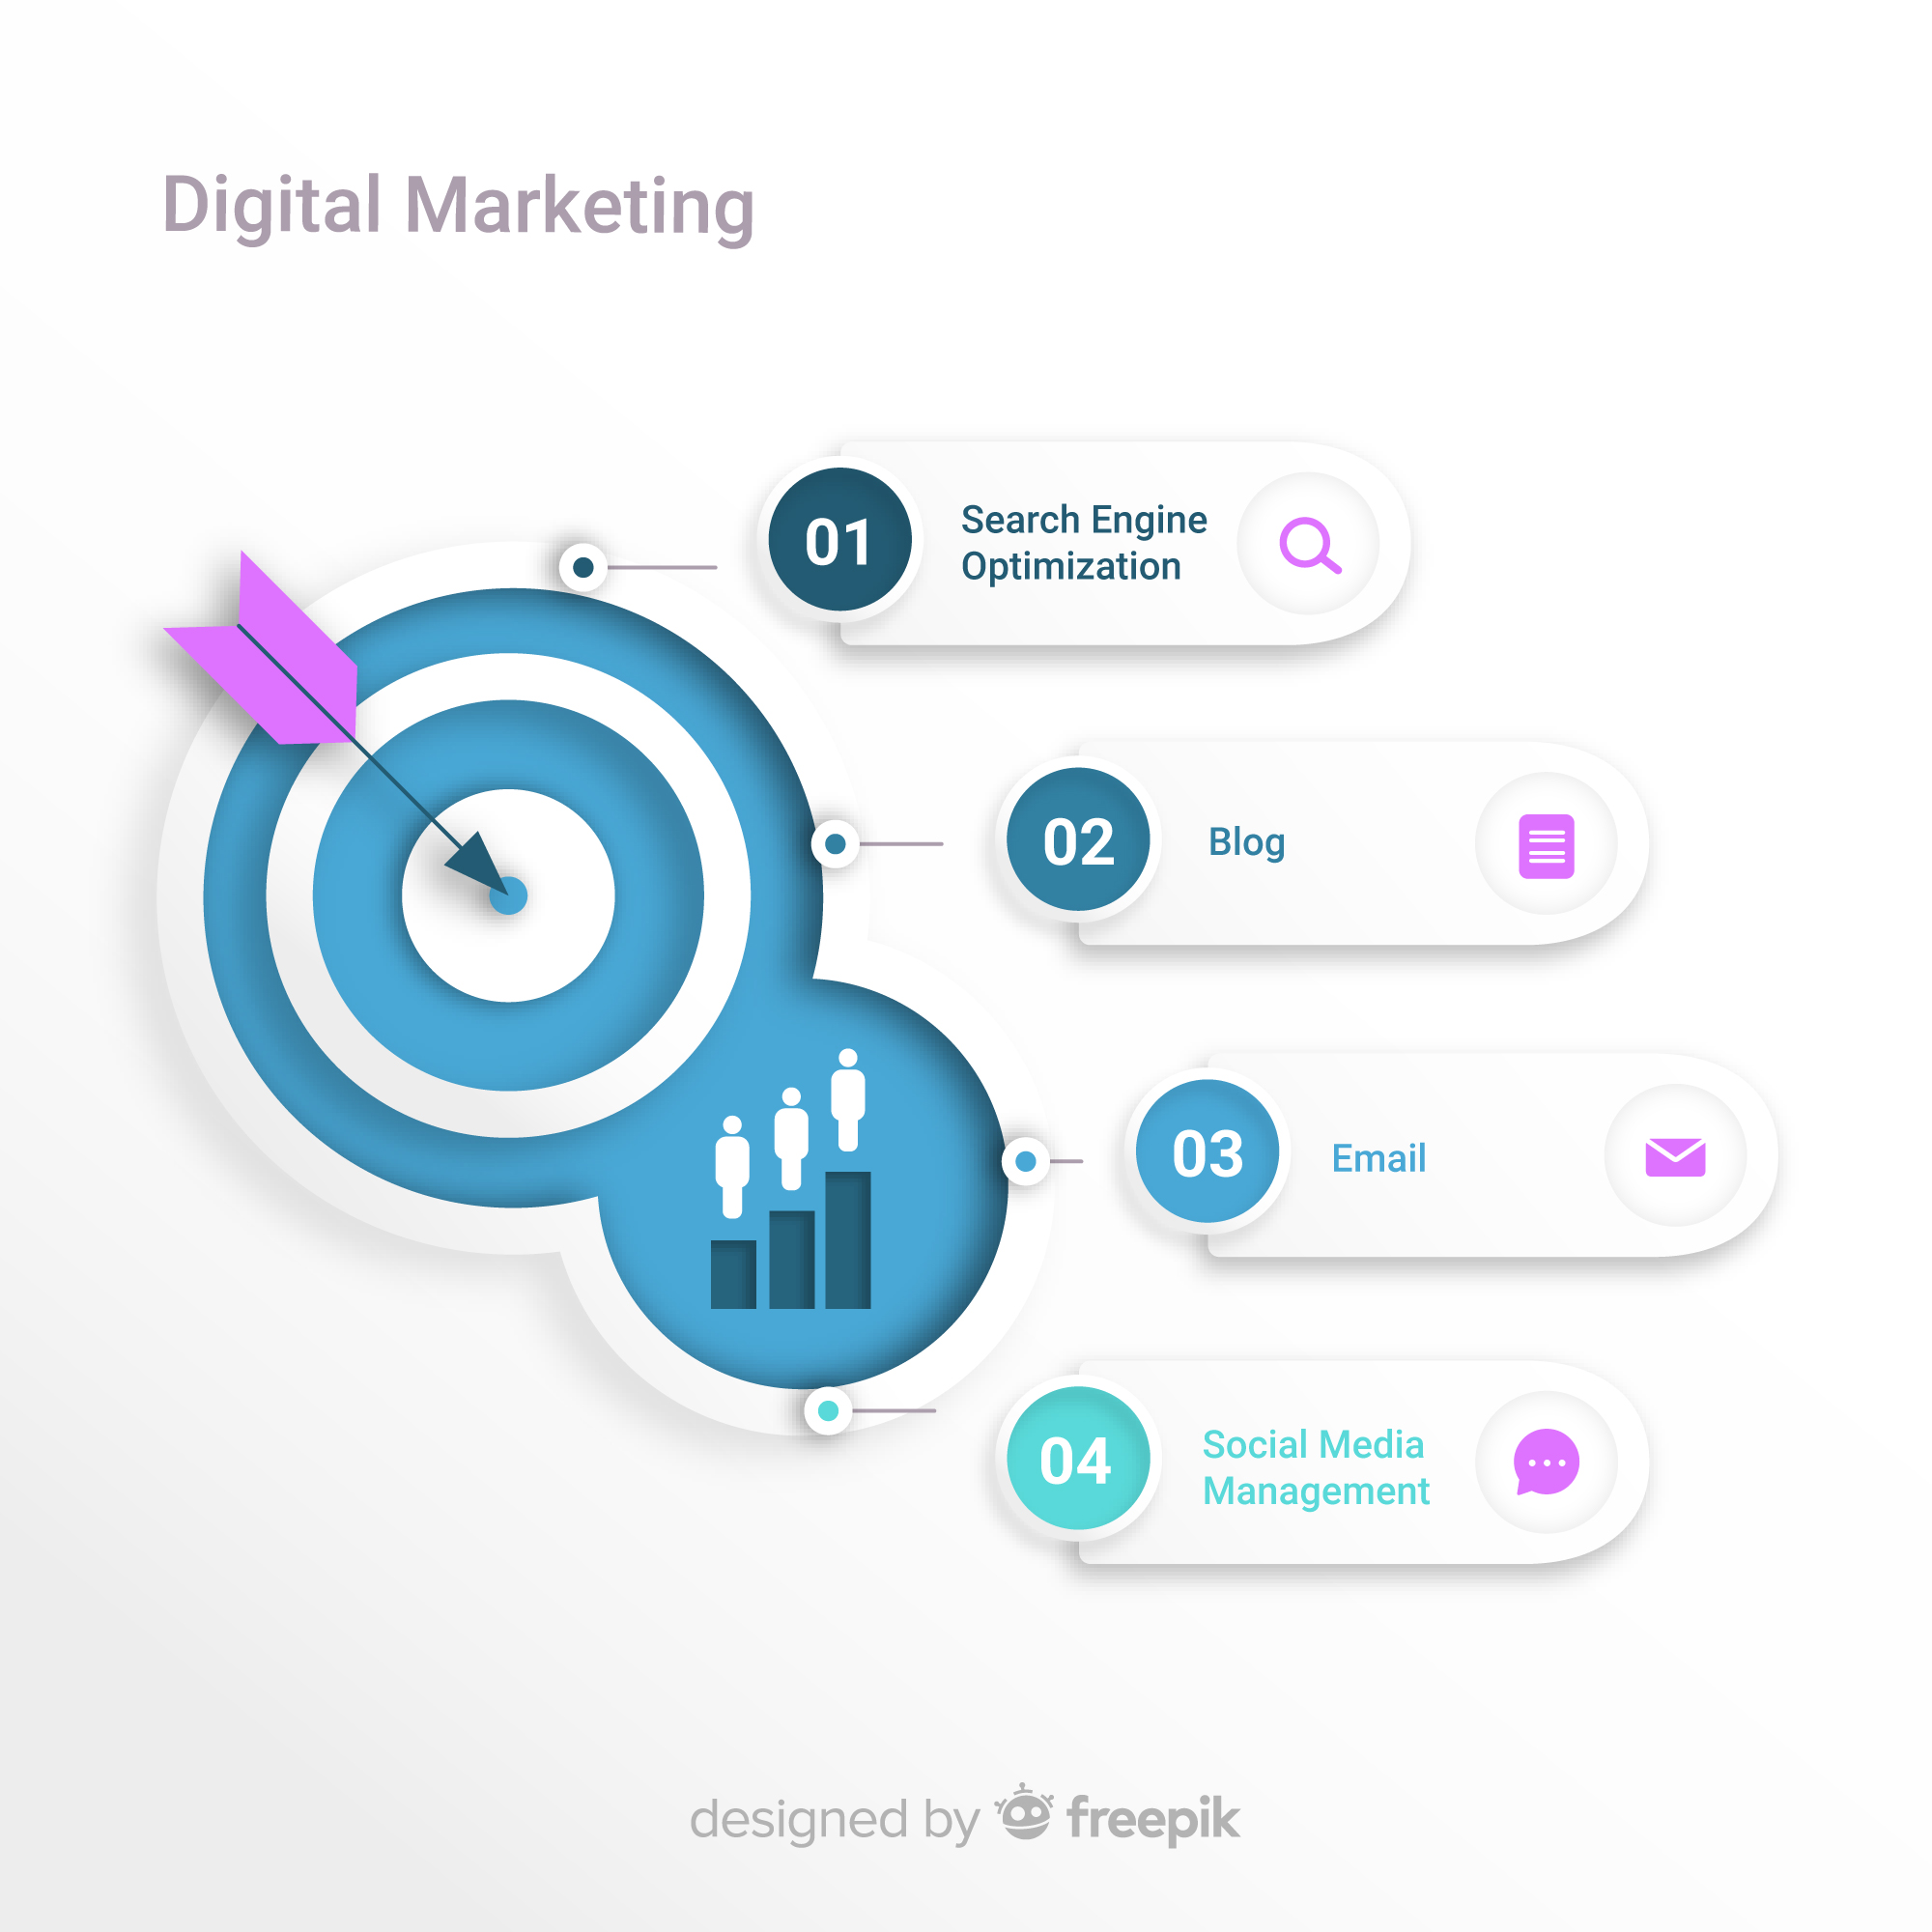 Digital marketing is the future of the business